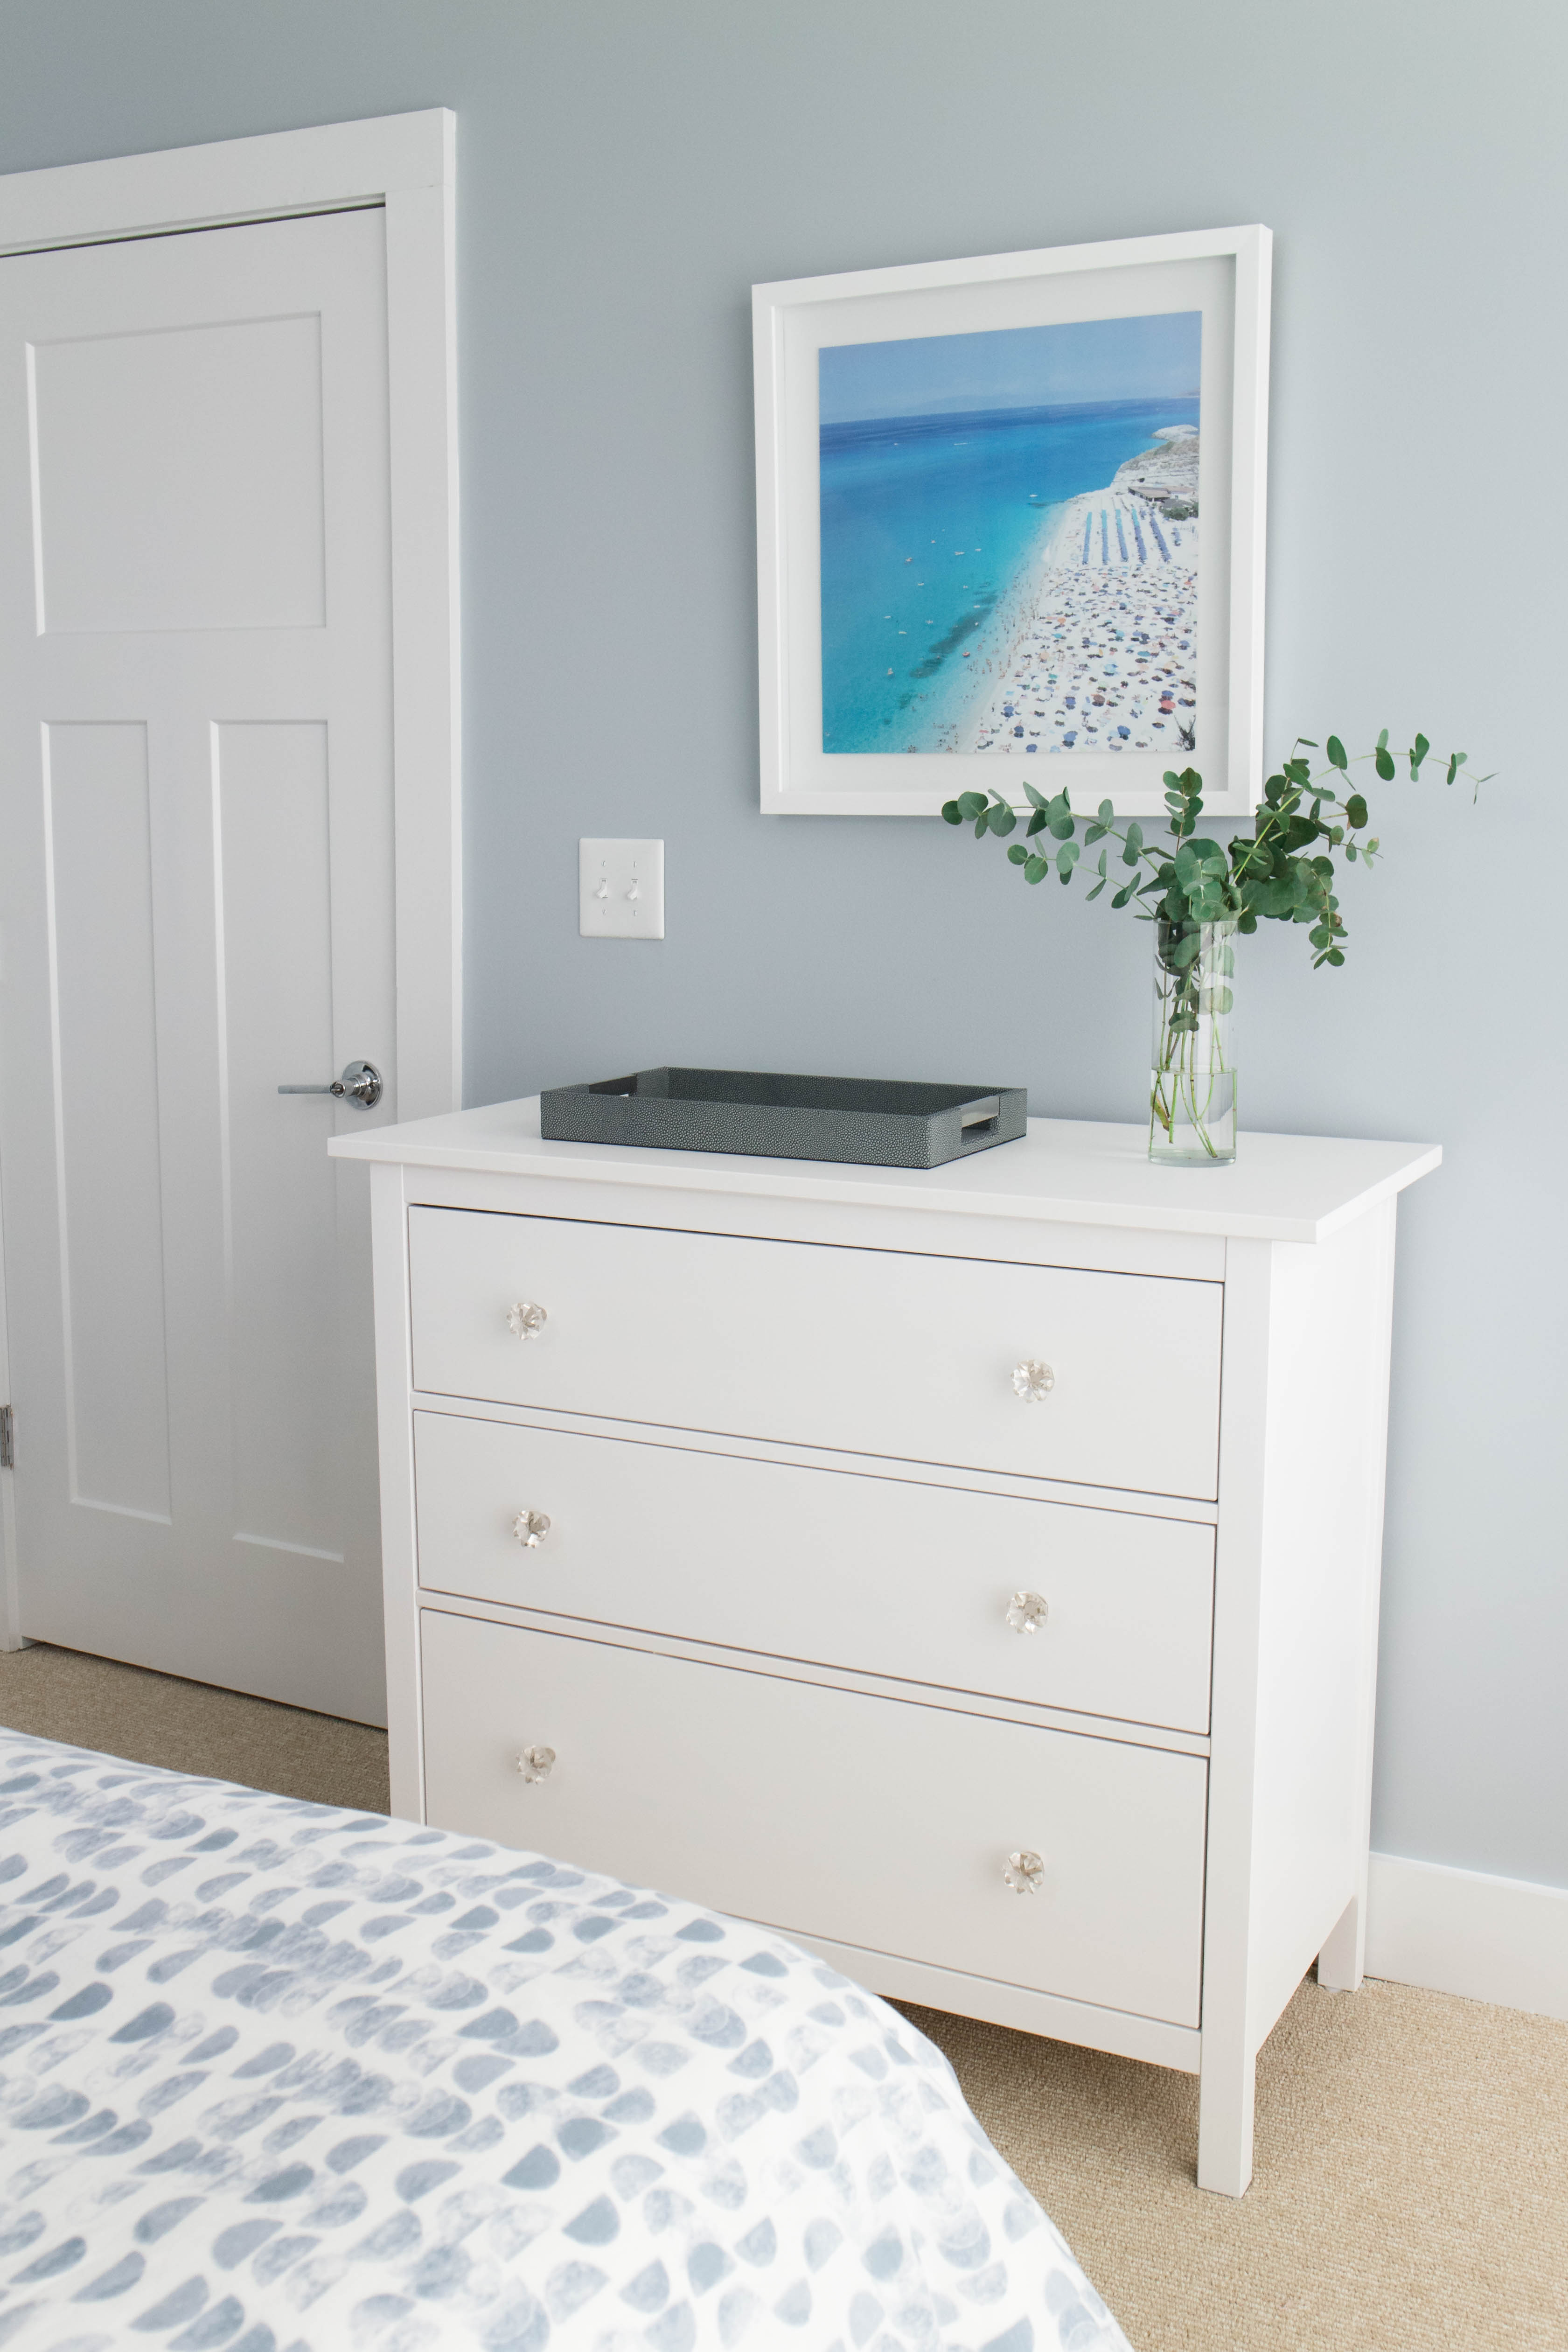 guest bedroom decor, ikea hemnes dresser